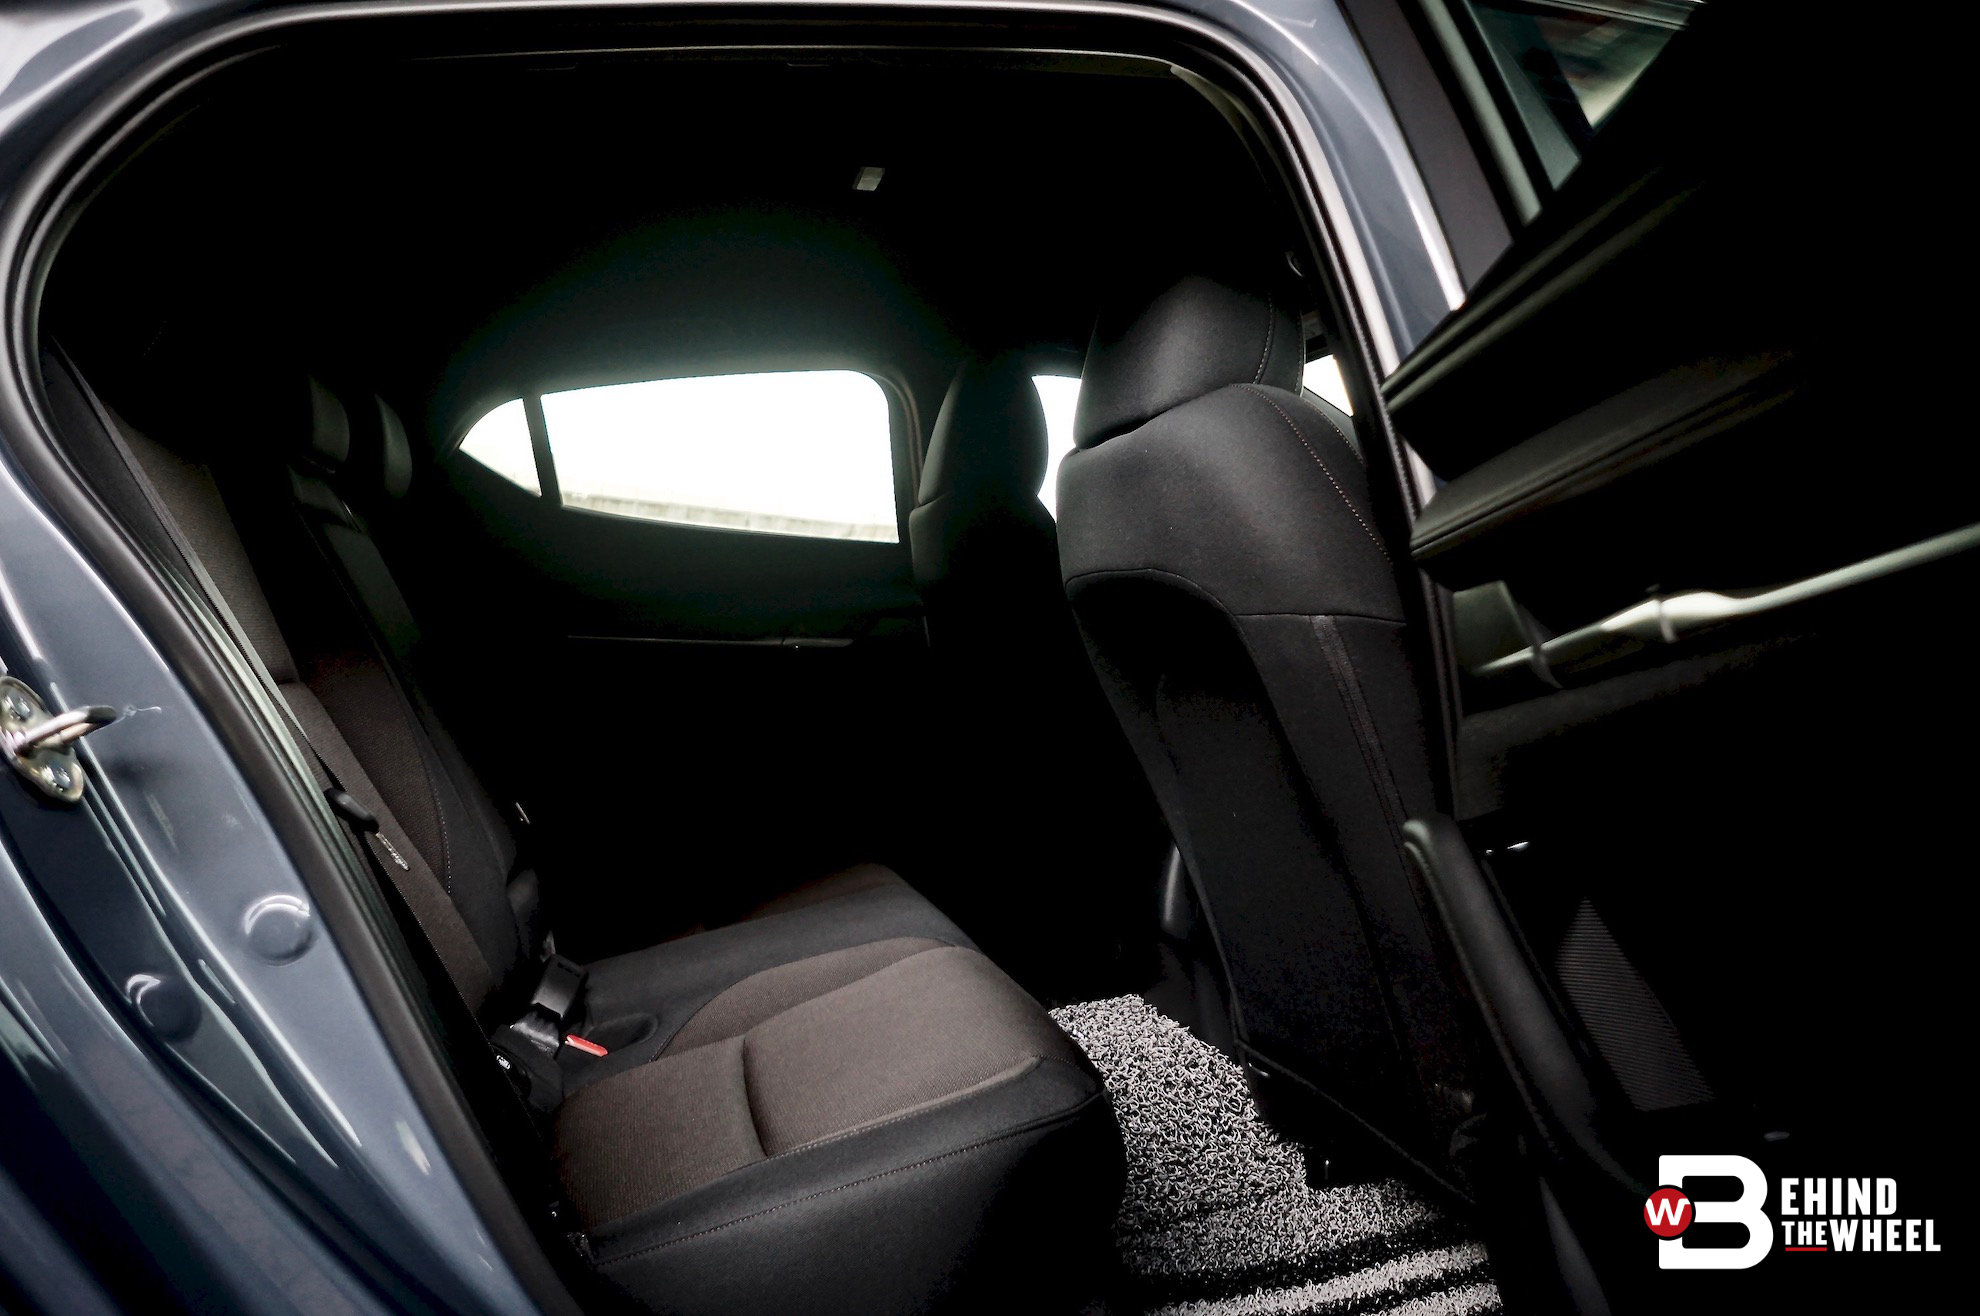 Tall people rejoice! The little notch in the front seats gives your knees more room.